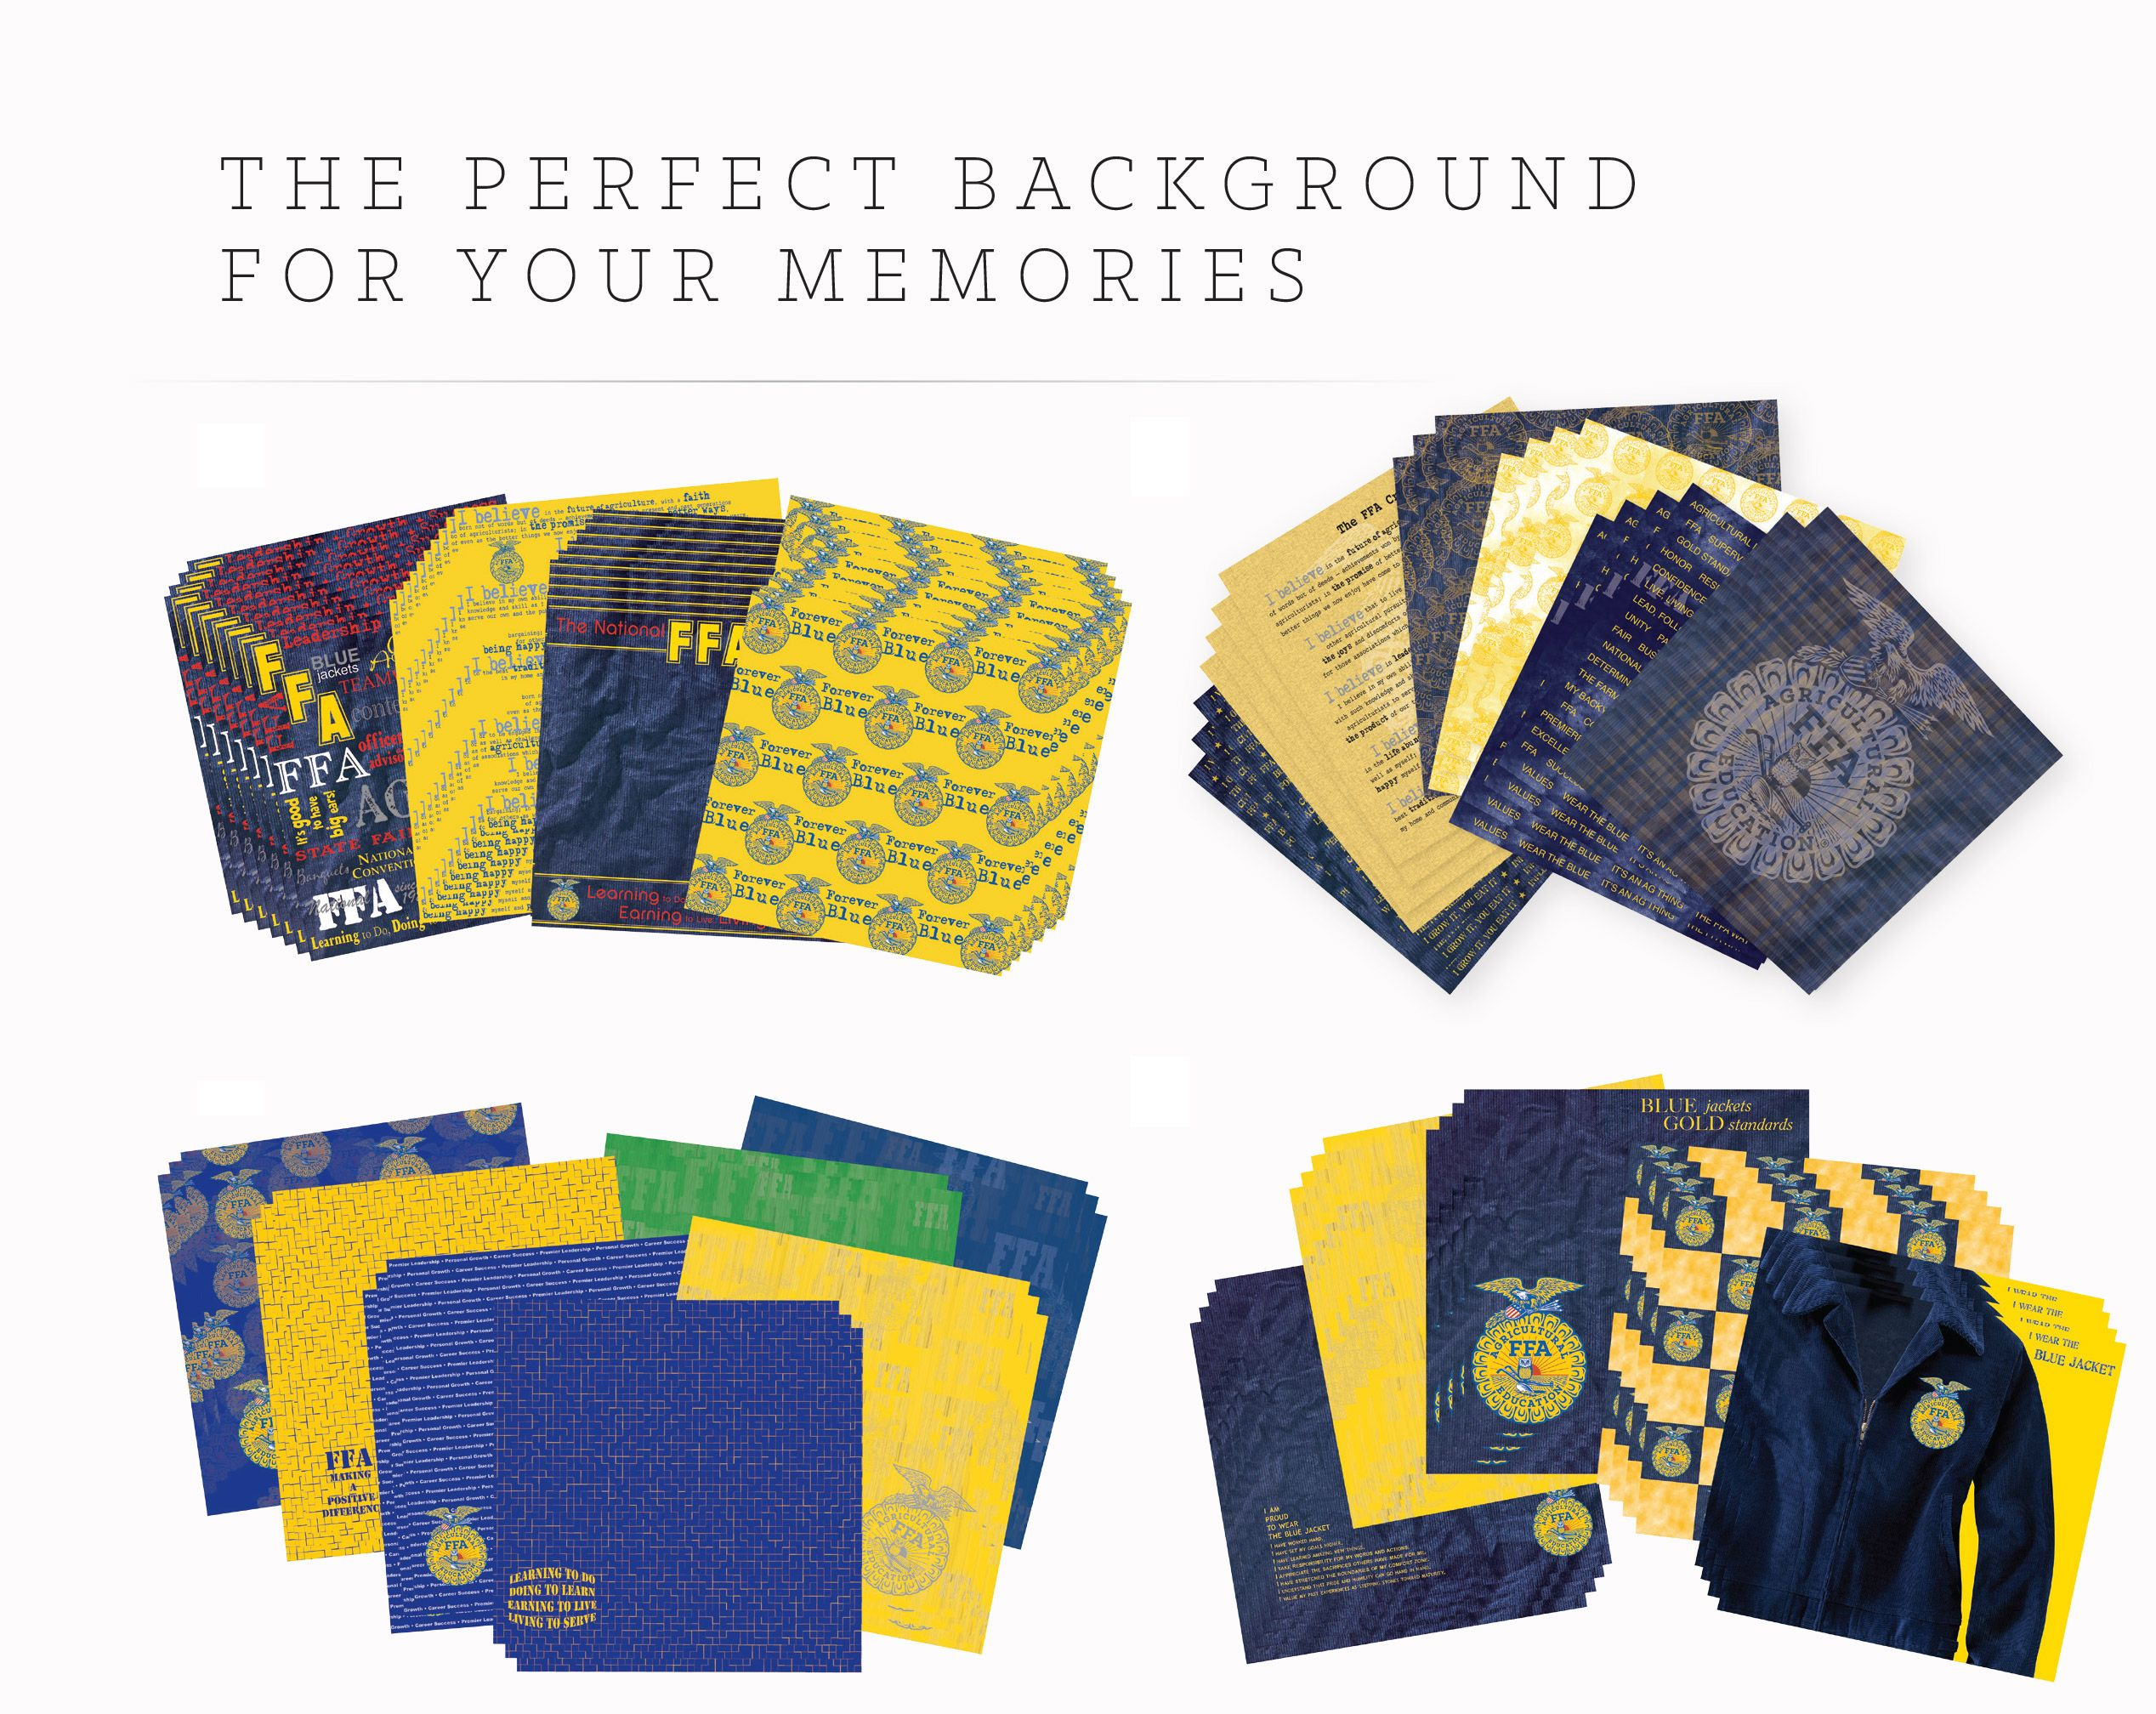 Ffa Scrapbook Paper And More At Shop Ffa Shop Ffa Pinterest Ffa